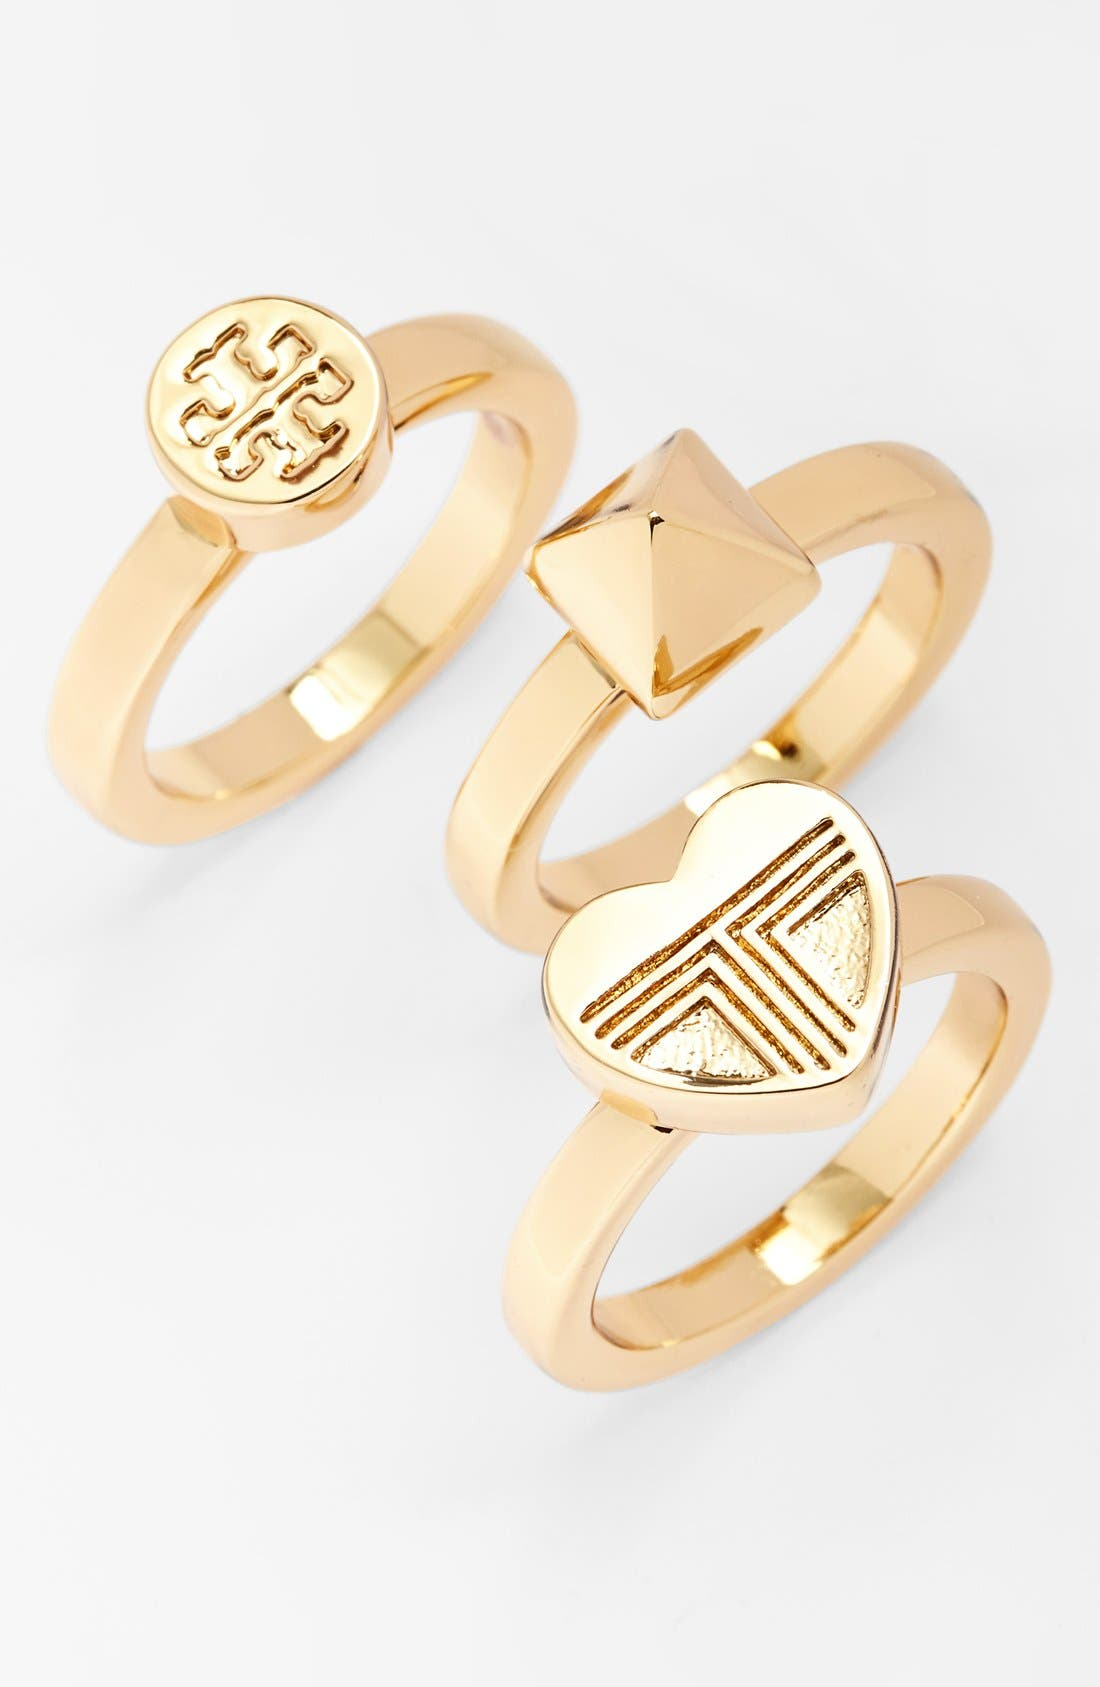 Alternate Image 1 Selected - Tory Burch 'Adeline' Stackable Rings (Set of 3)